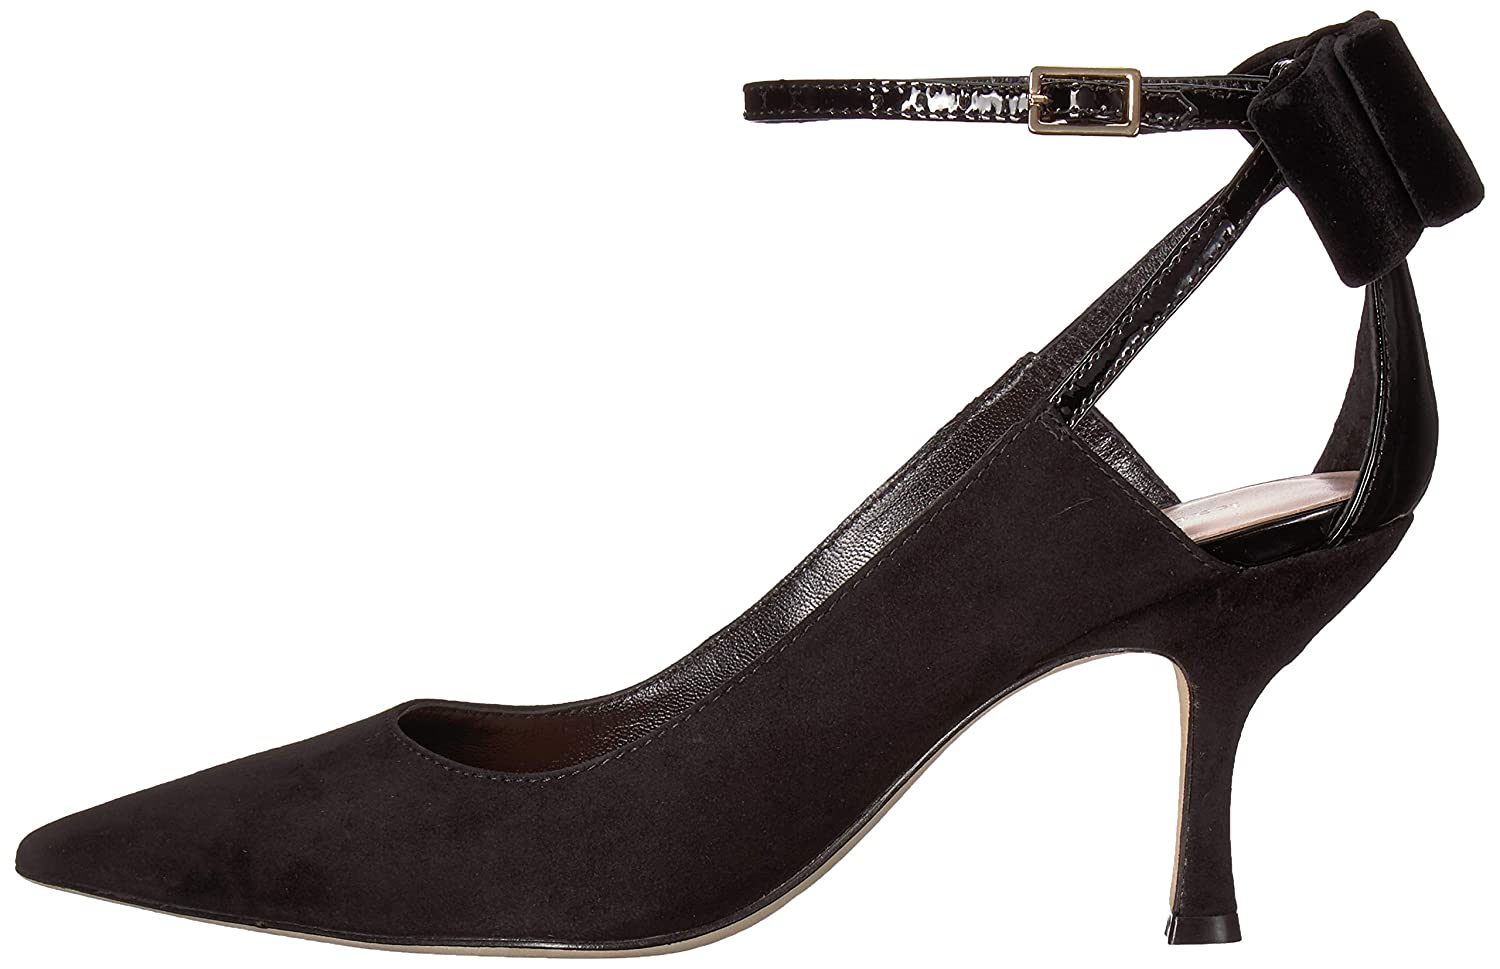 Kate Spade New York Womens Sheena Pump